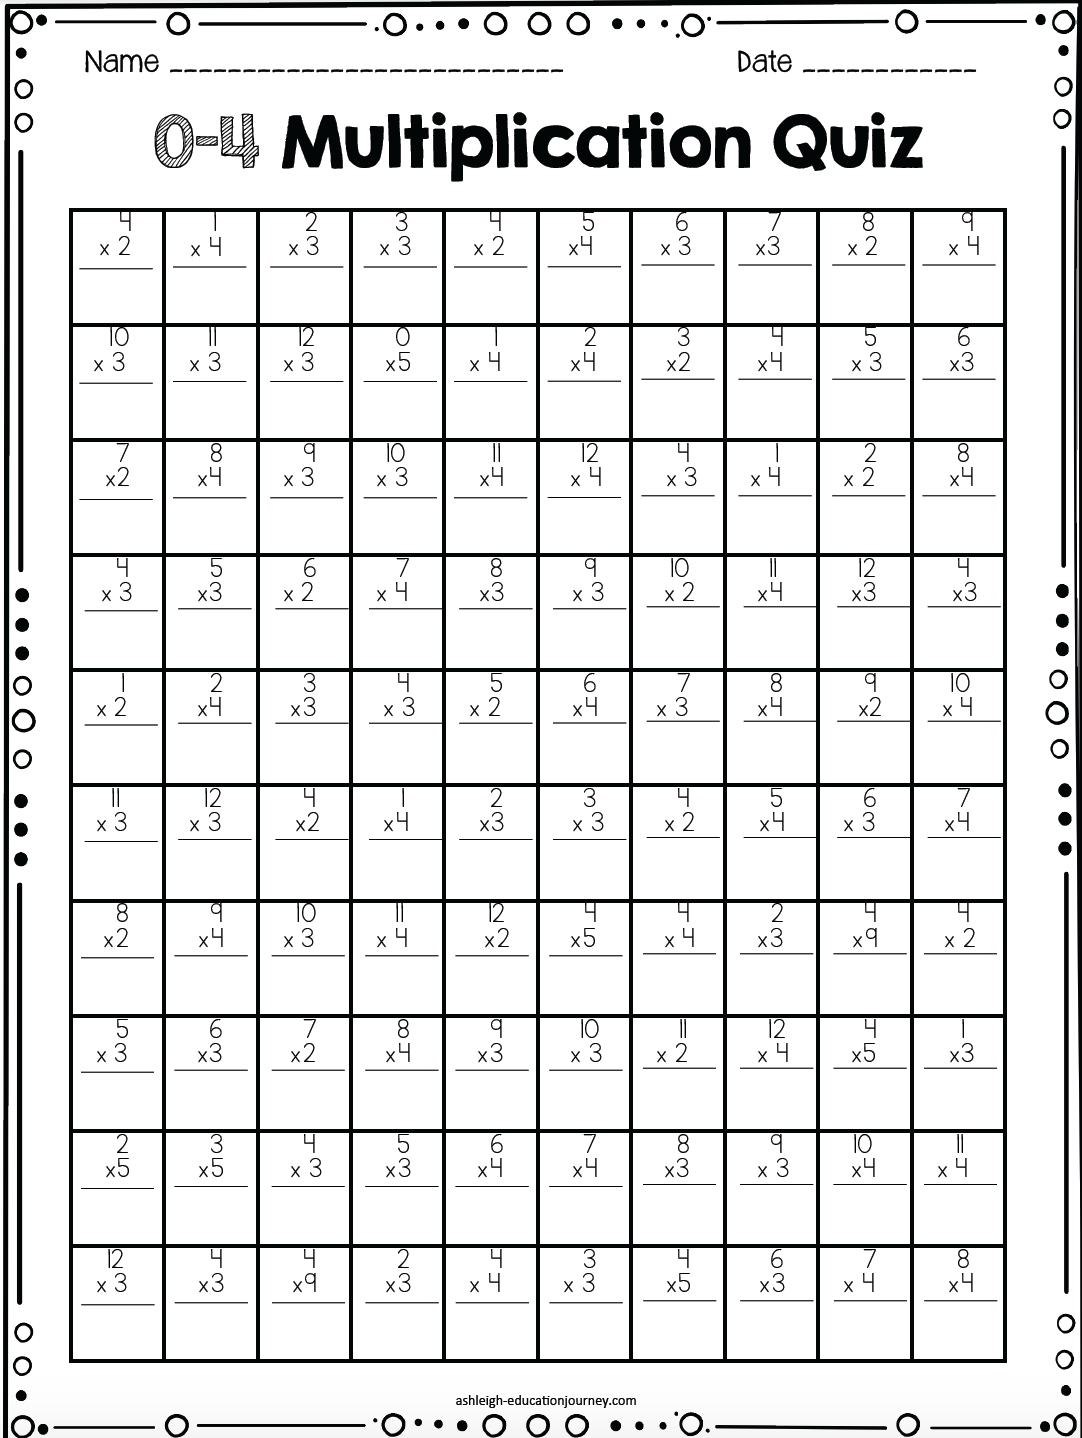 Multiplication Facts For Upper Elementary Students | Class | Math - Free Printable Multiplication Speed Drills